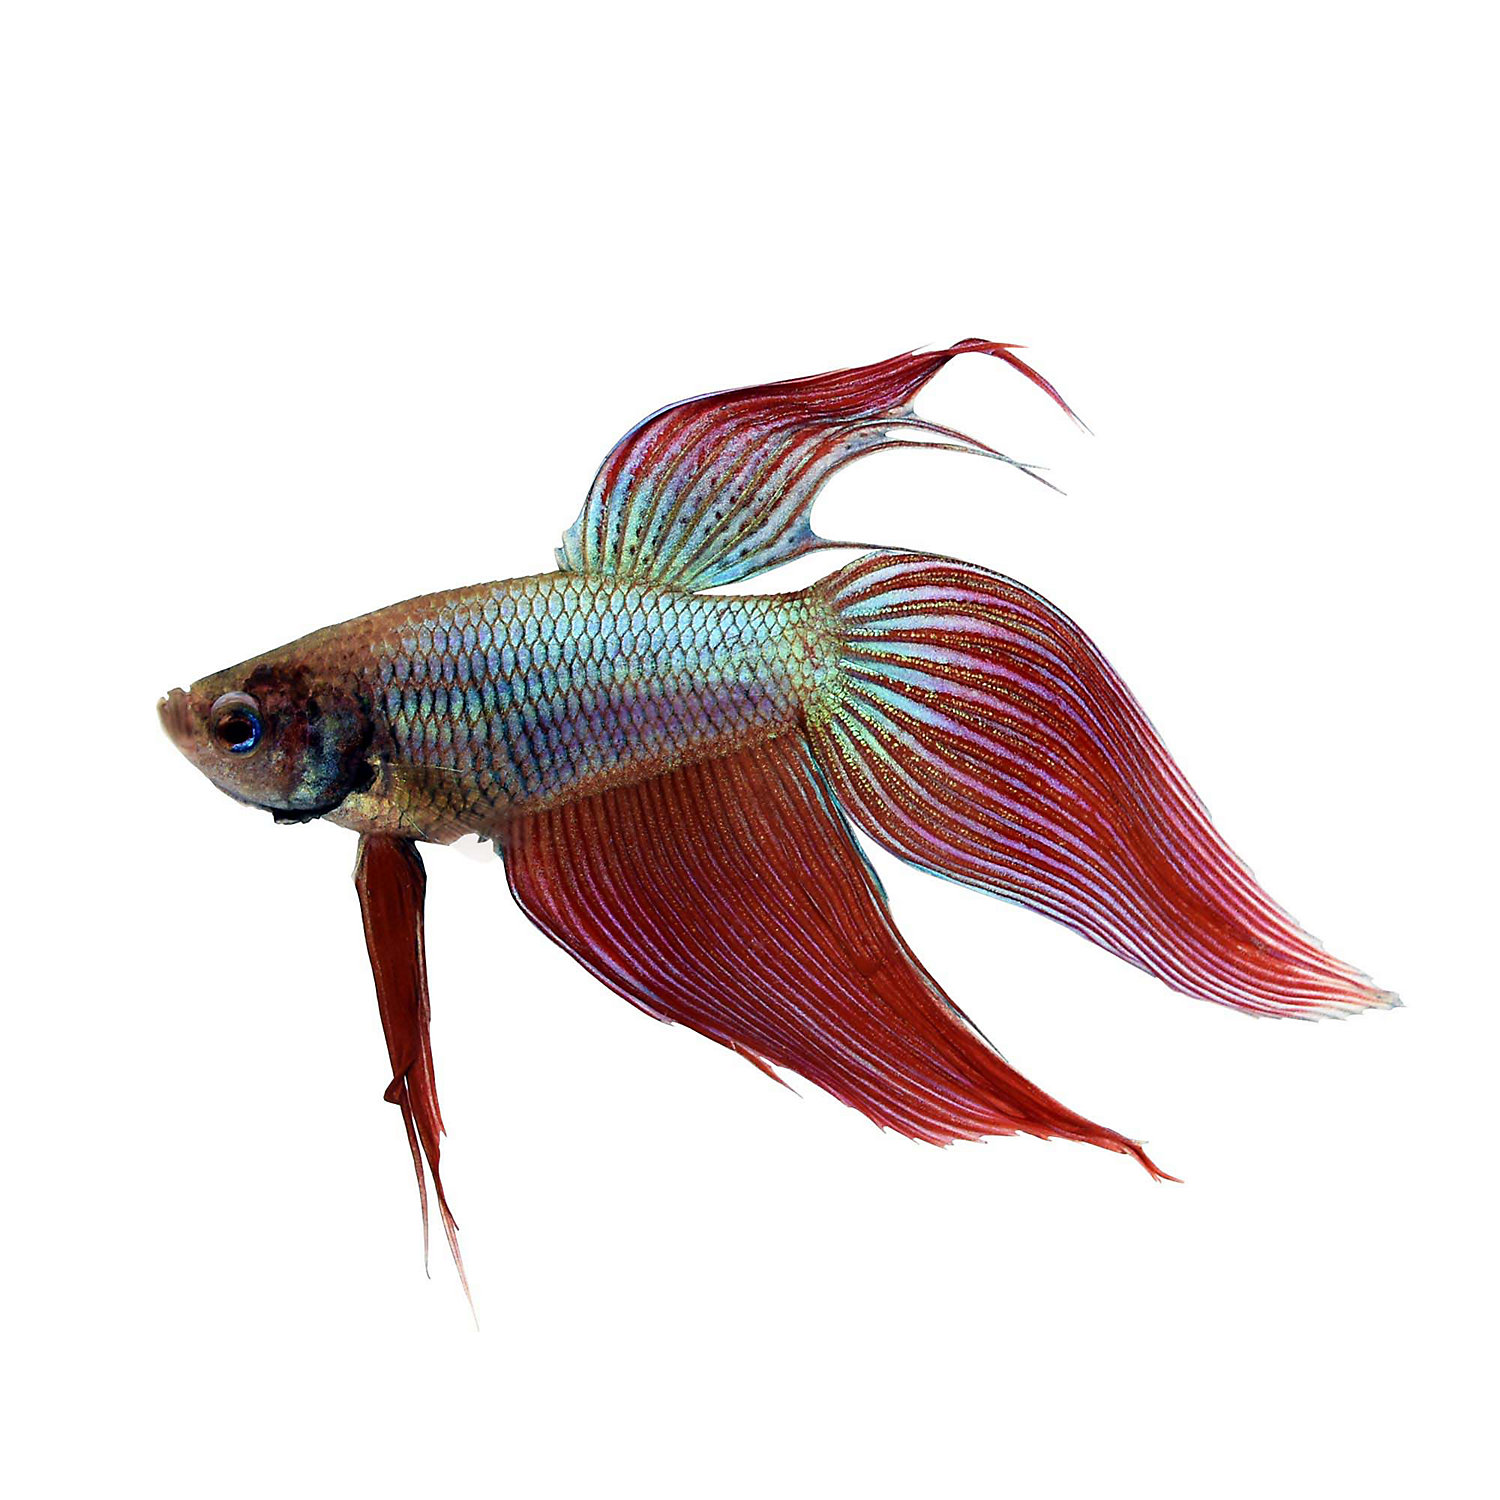 Siamese fighting fish betta betta splendens fish guide for Petco live fish